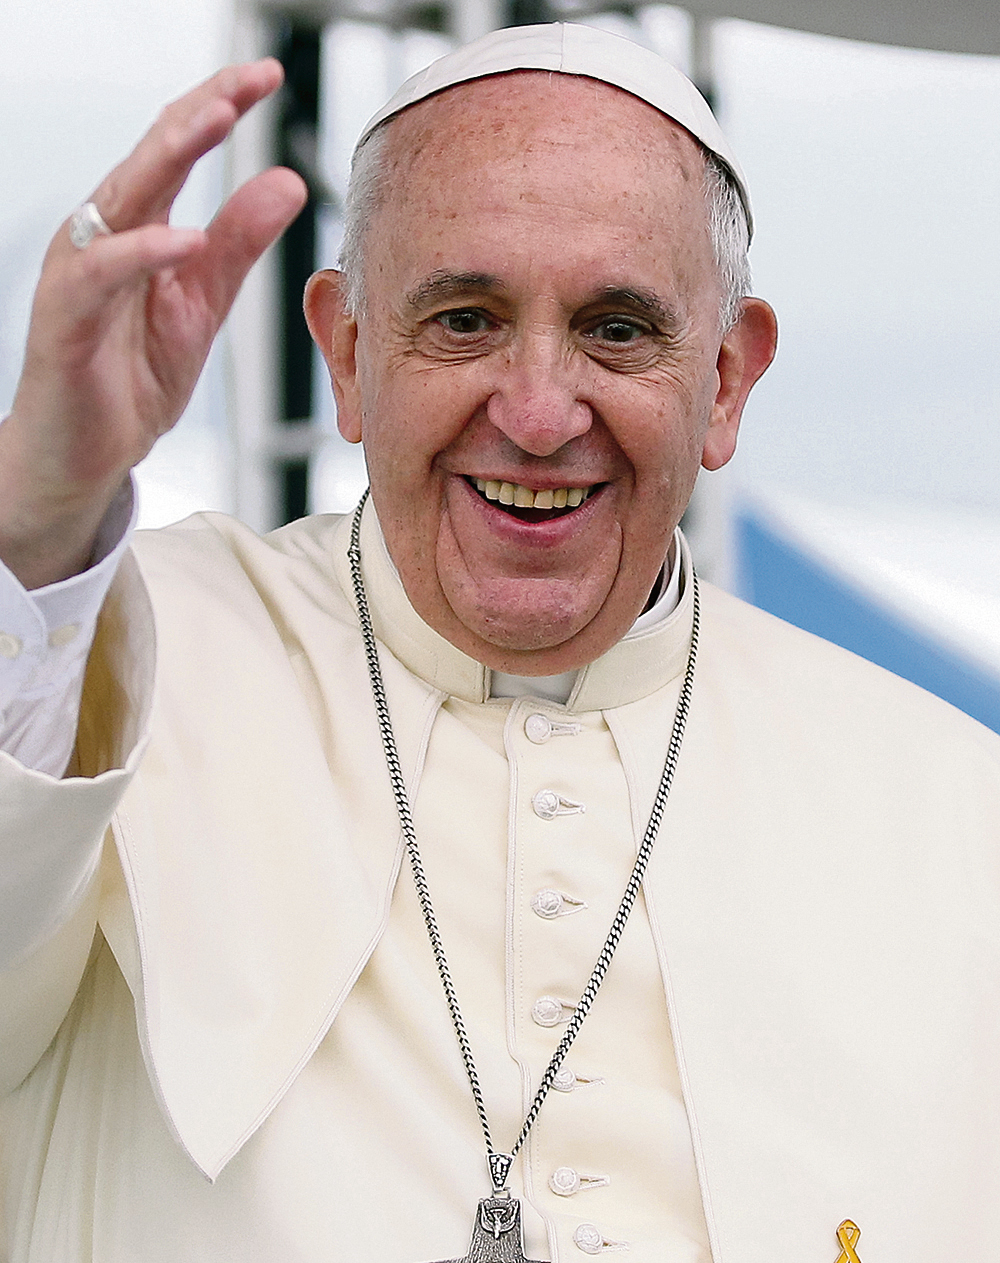 Vatican releases possible Irish Papal visit dates